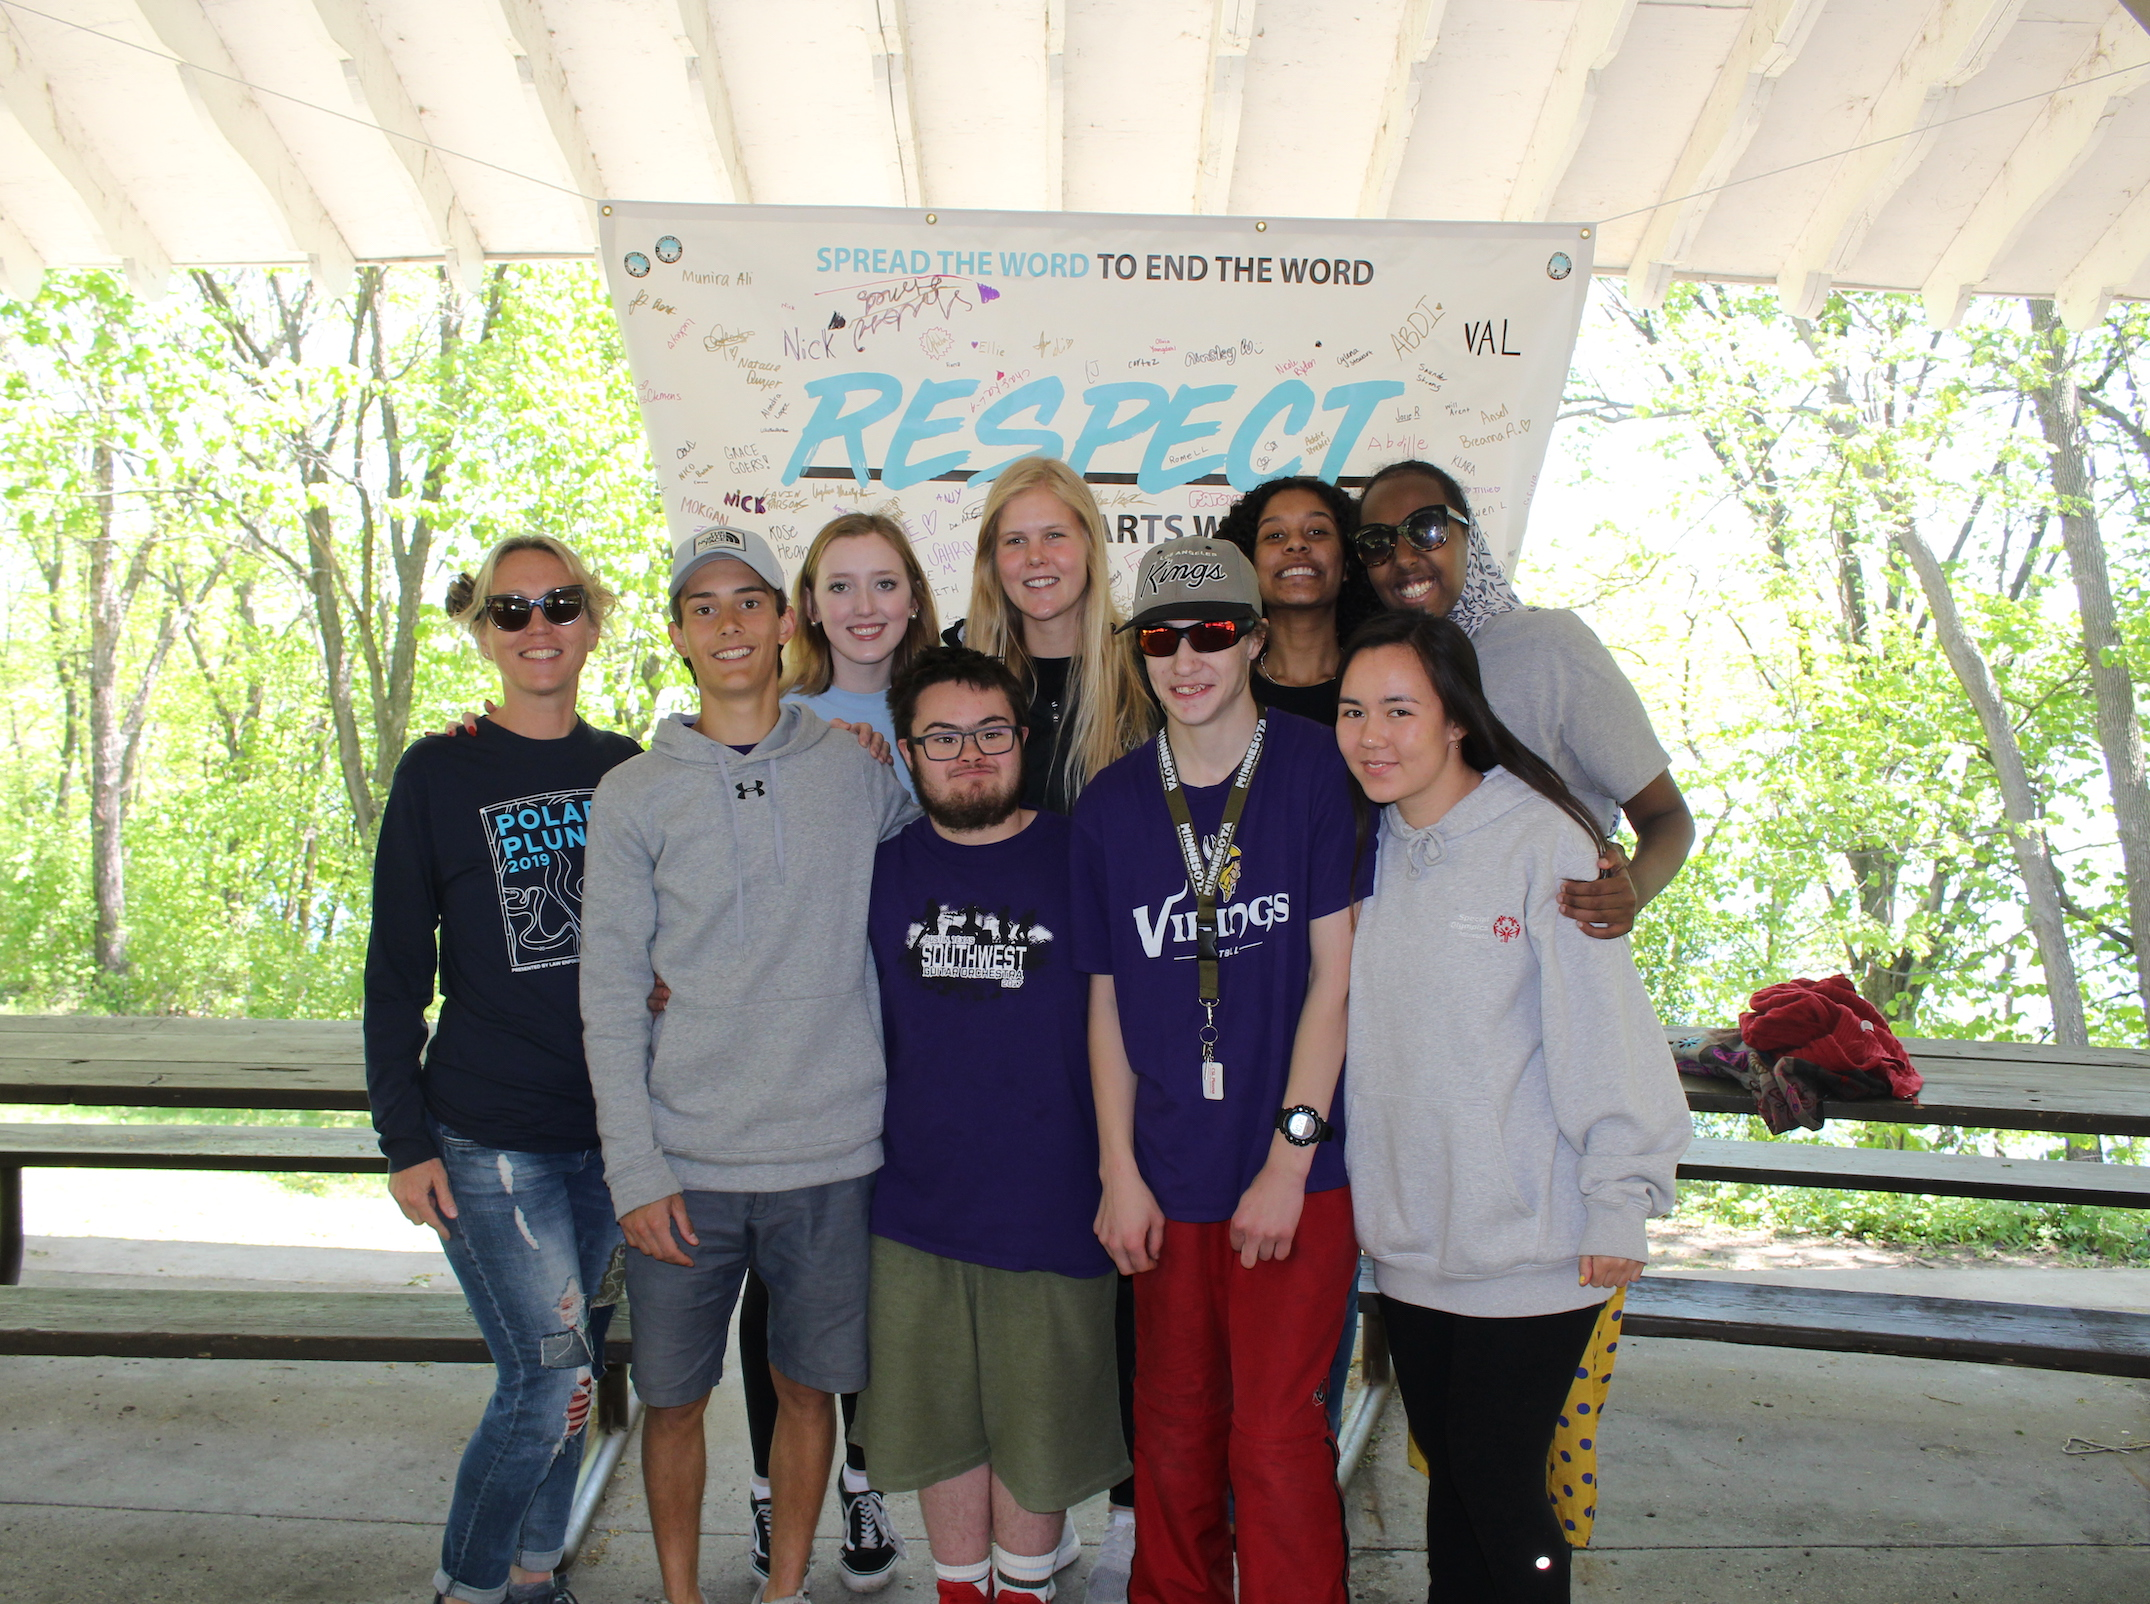 The unified club's leadership board (from left to right): Heidi Carsello, Gabe Van De Walker, Ellie Pfeifer, Oliver Herfindal, Olivia Youngdahl, Robert Nordgaard, Ophelia Washington, Morgan Ellingson and Shukri Ahmed. Not pictured: Michael Grace, Abdille Dahir, Lucy Kegley and Liban Mohamed.